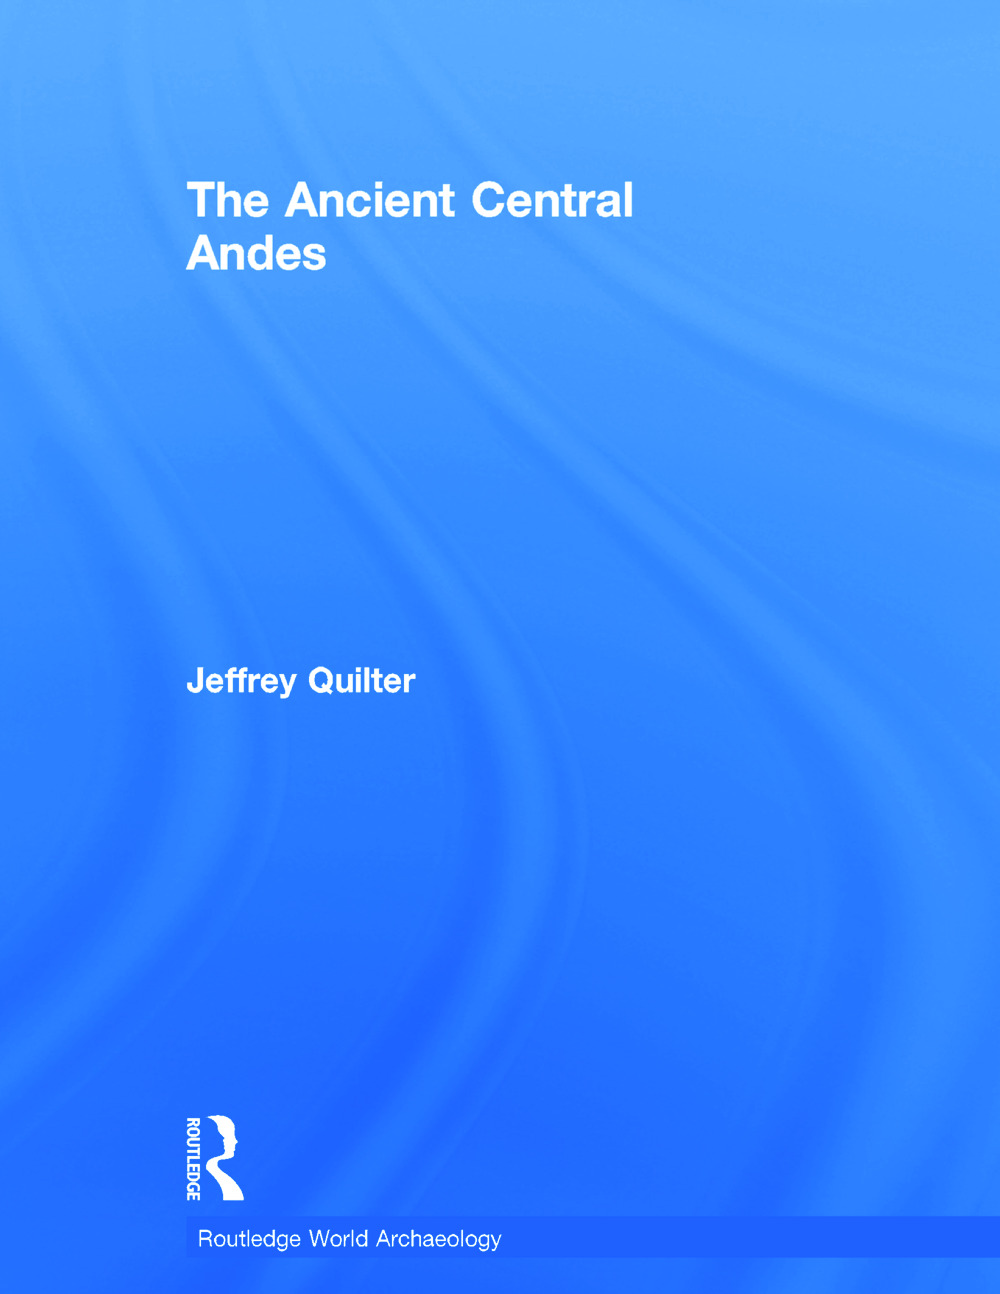 Space, time, and form in the Central Andes